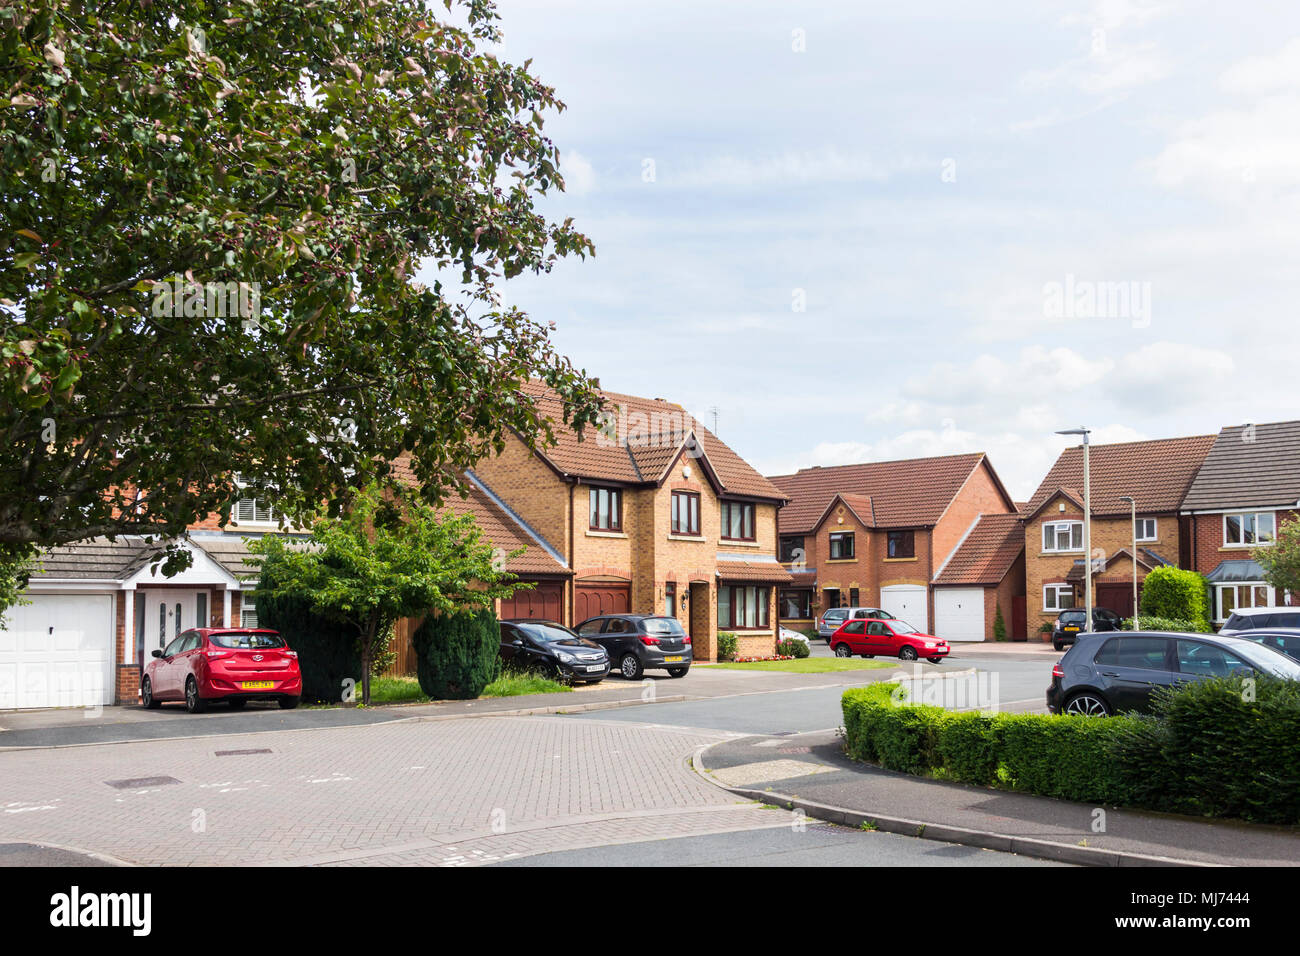 Late 20th century(1980s)  suburban detached housing in the Abbeymead area of Gloucester, 2 miles south-west of the centre of Gloucester. - Stock Image